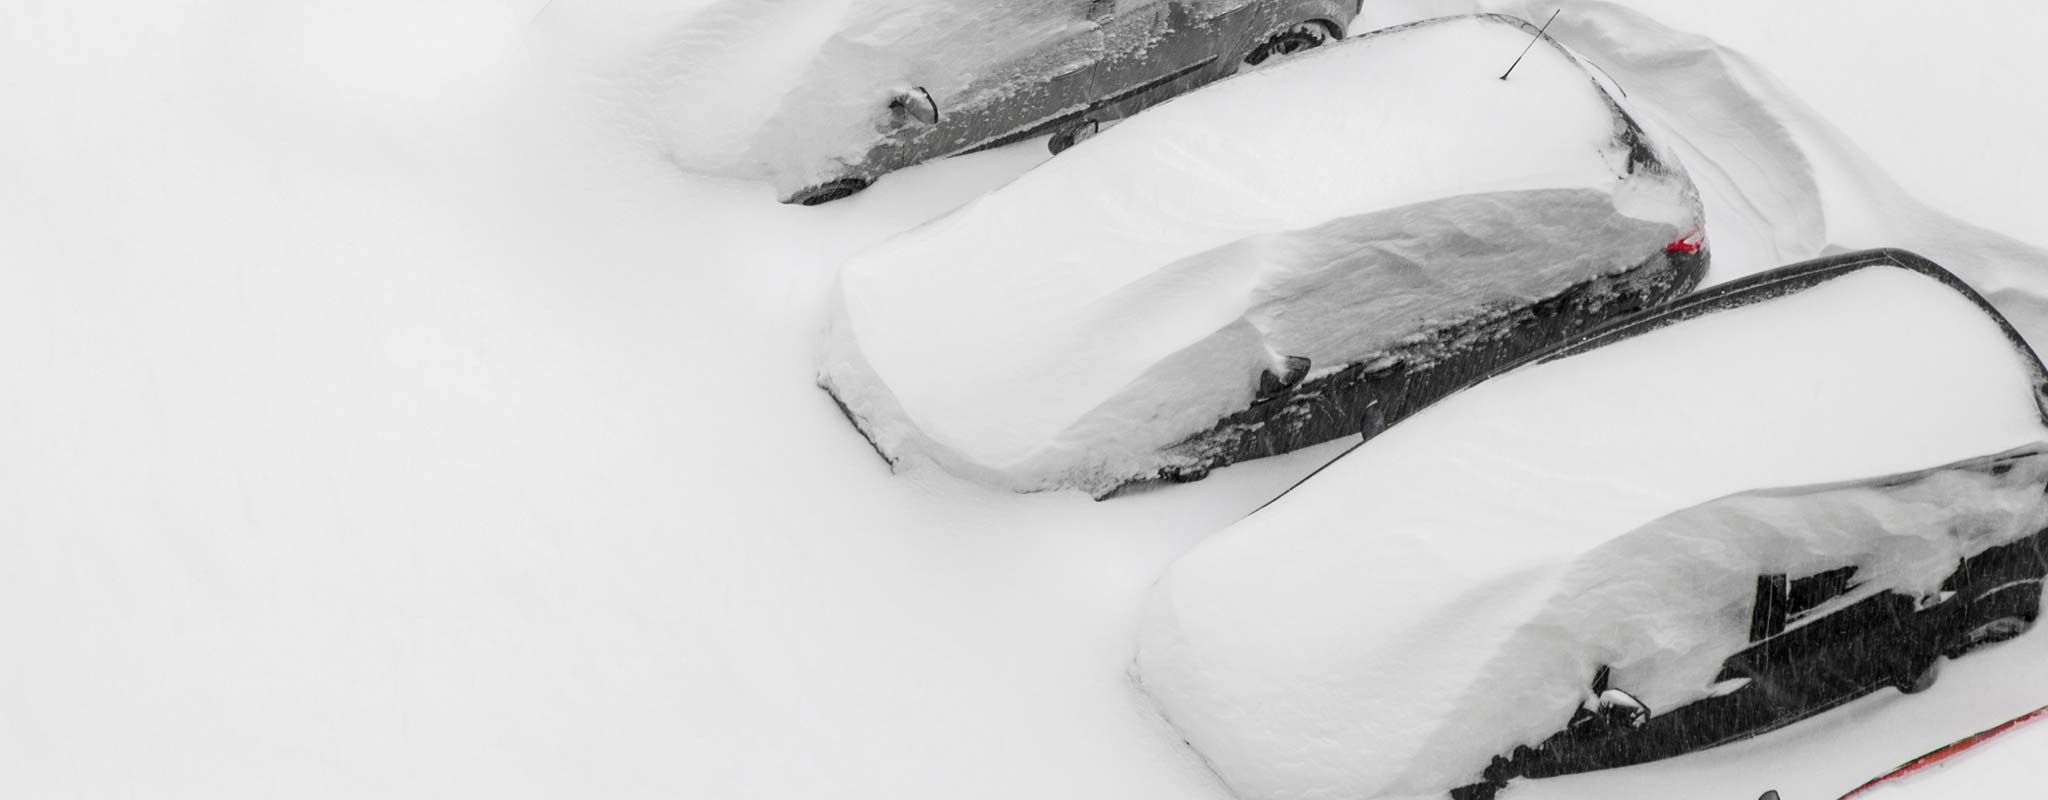 7 Things To Do When Your Car is Stuck in Snow - Les Schwab